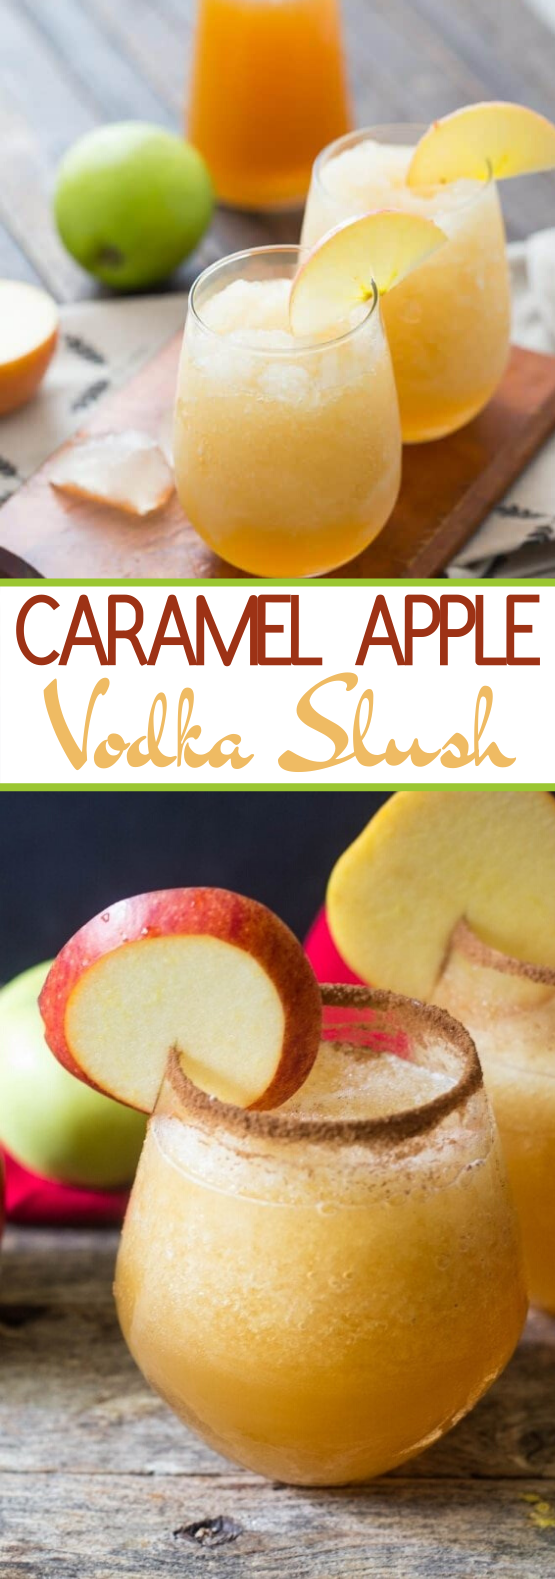 Caramel Apple Vodka Slush #drinks #alcohol #slushie #vodka #fall